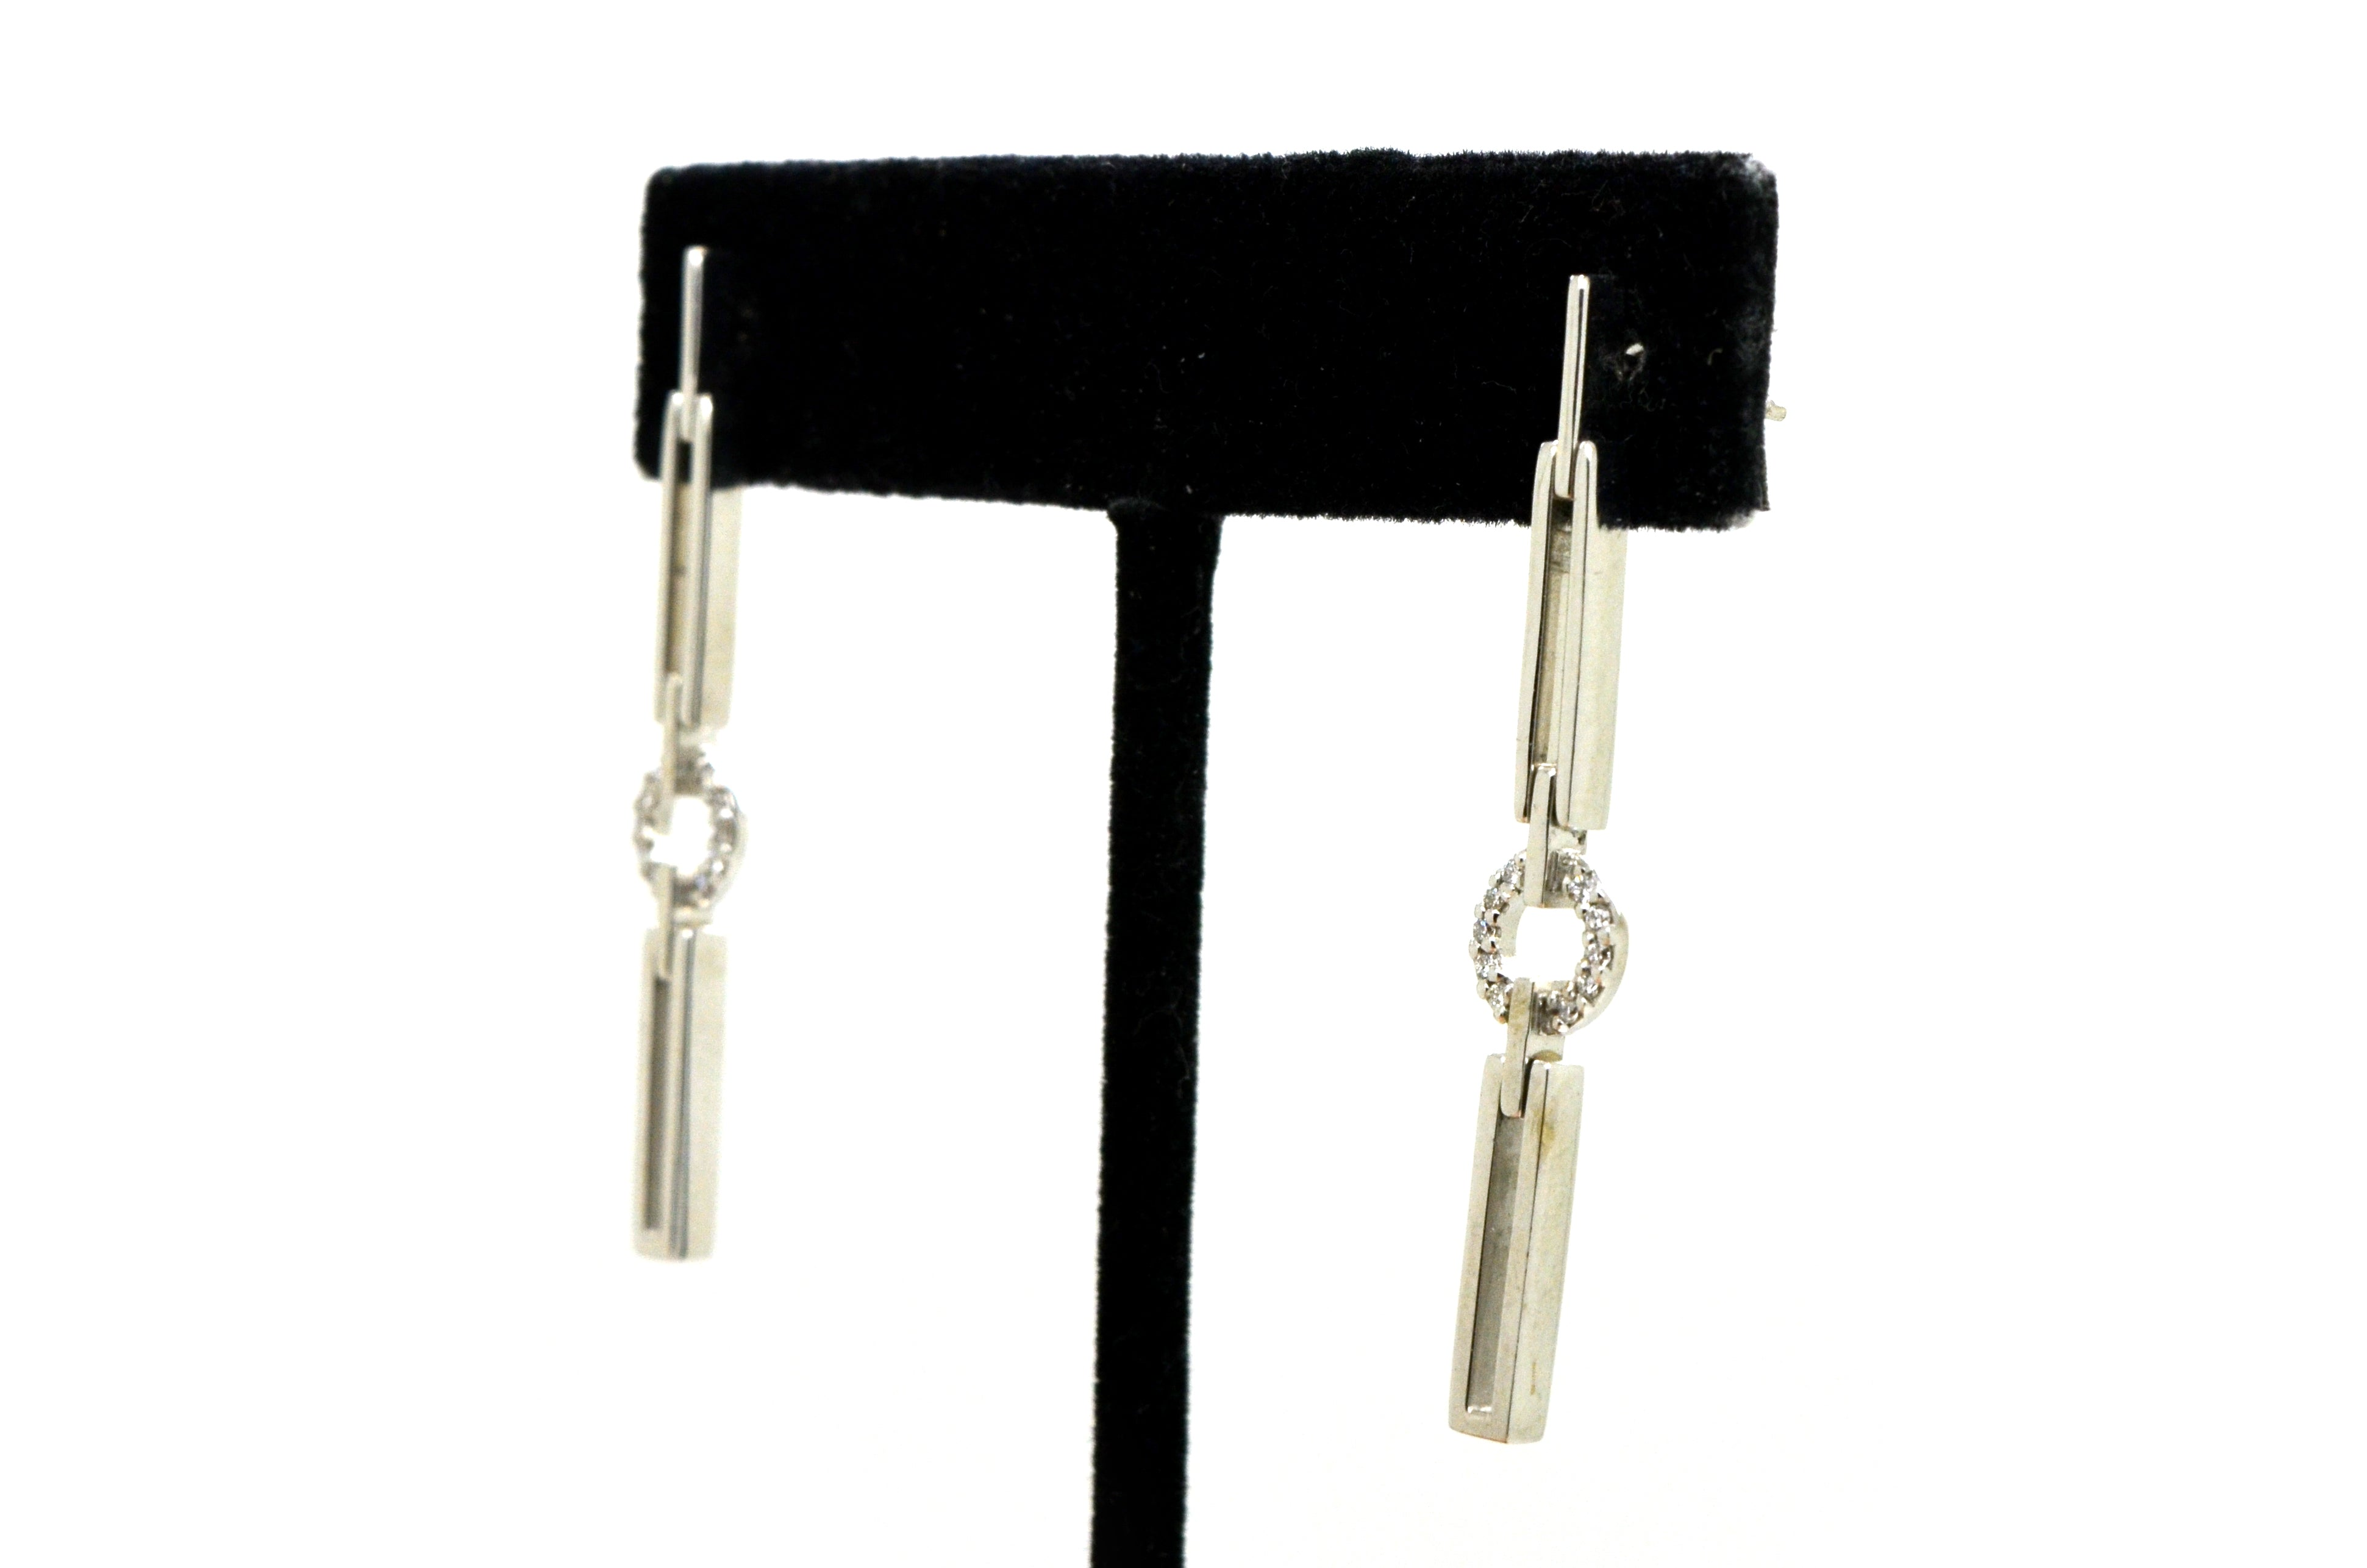 14k White Gold Diamond Dangle Drop Earrings - 45 mm drop - .25 ct. total